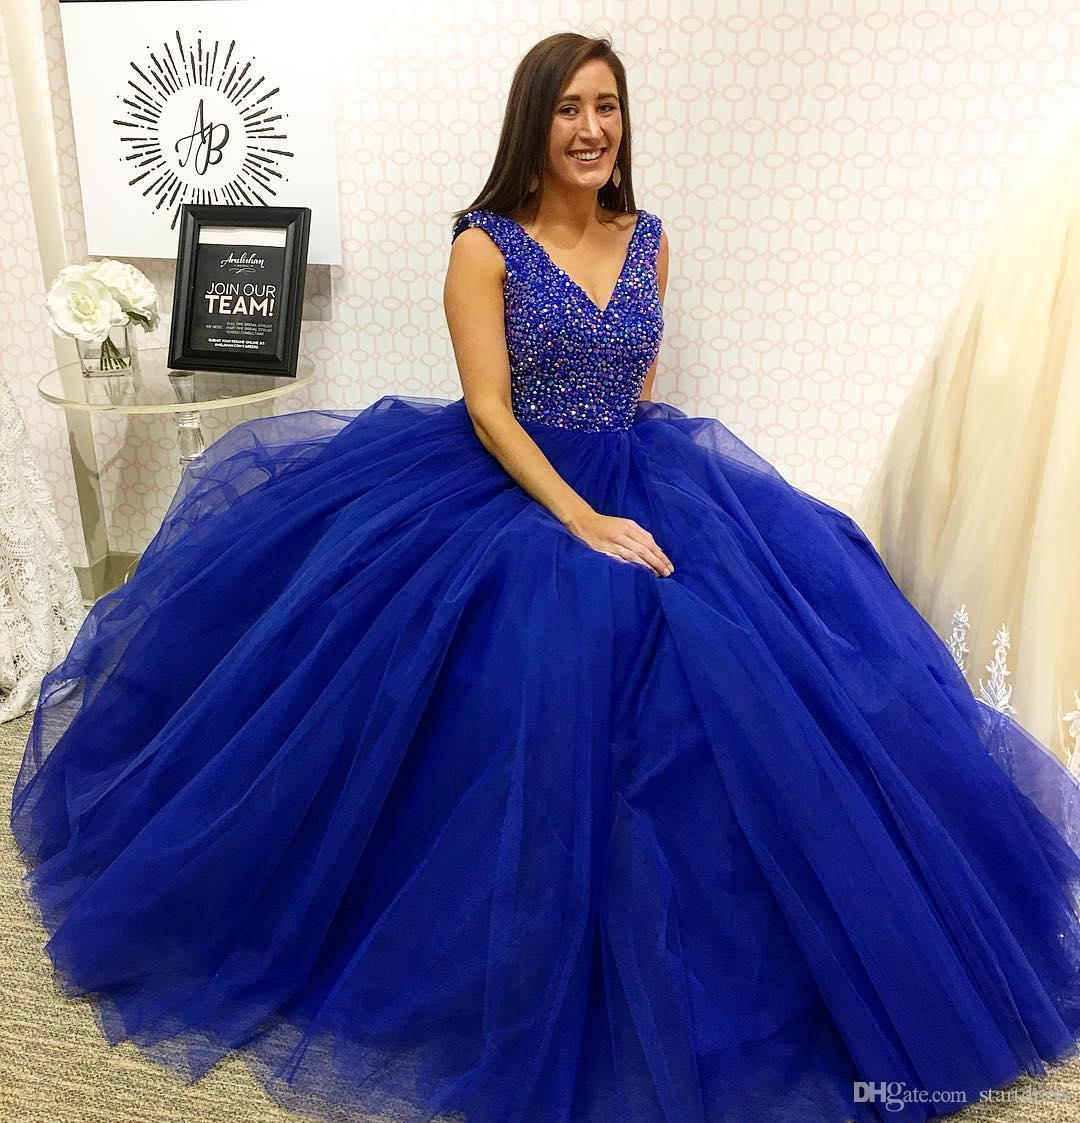 Vintage Ball Gown Prom 2018 Gray royal Blue Top Beaded Tulle Evening Sexy V Neck Floor Length Long Party Plus Size Holiday Special